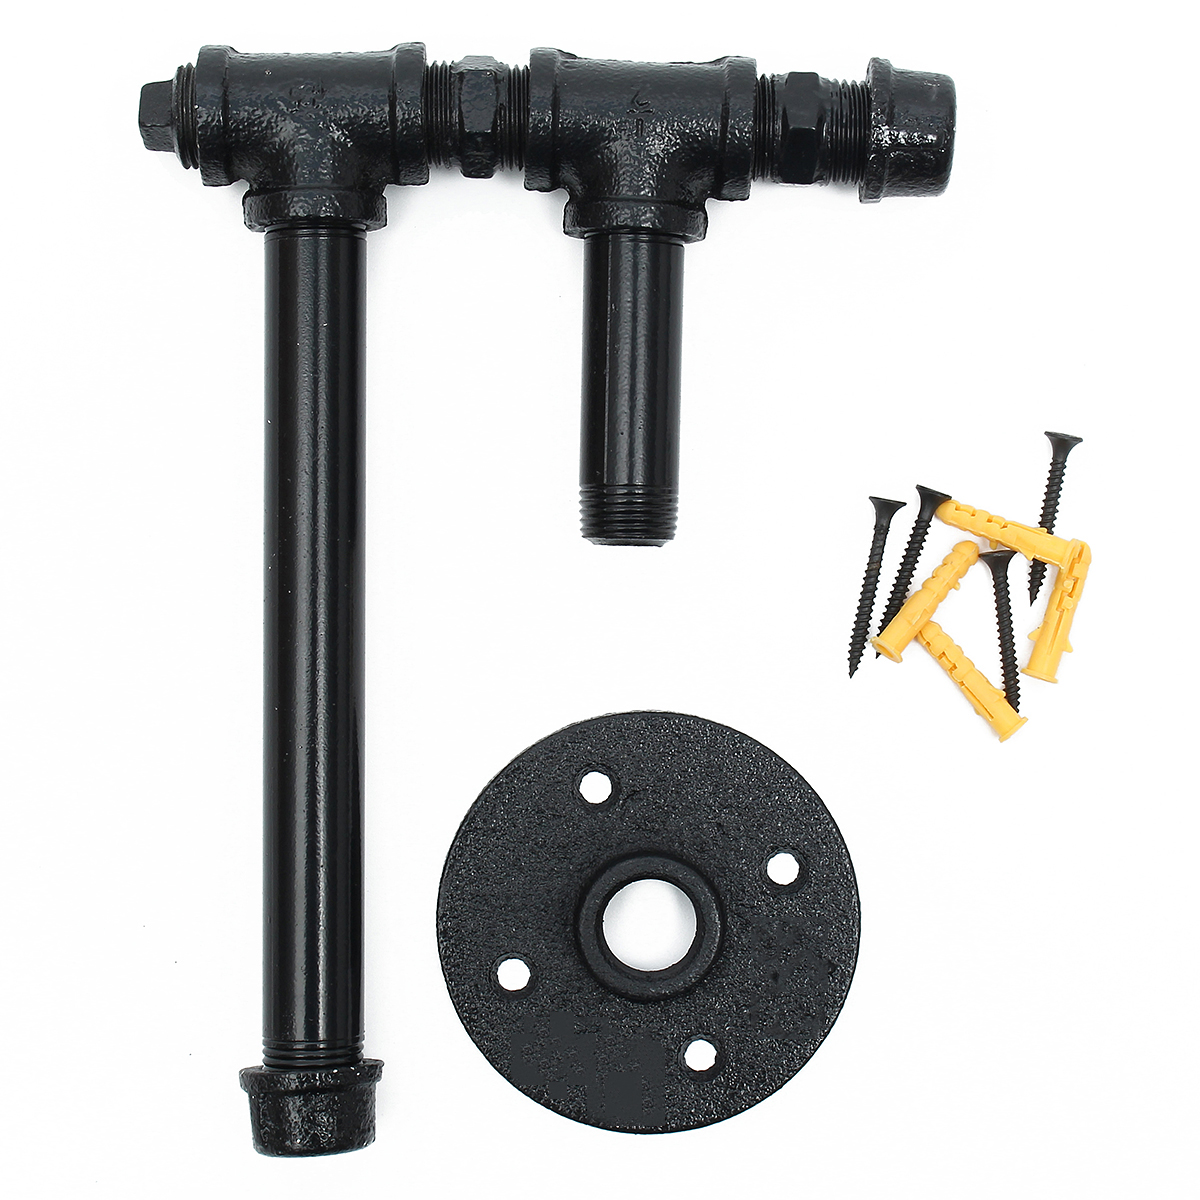 220mm Industrial Iron Pipe Tissue Holder Rustic Wall Mount Black Toilet Paper Roll Holder